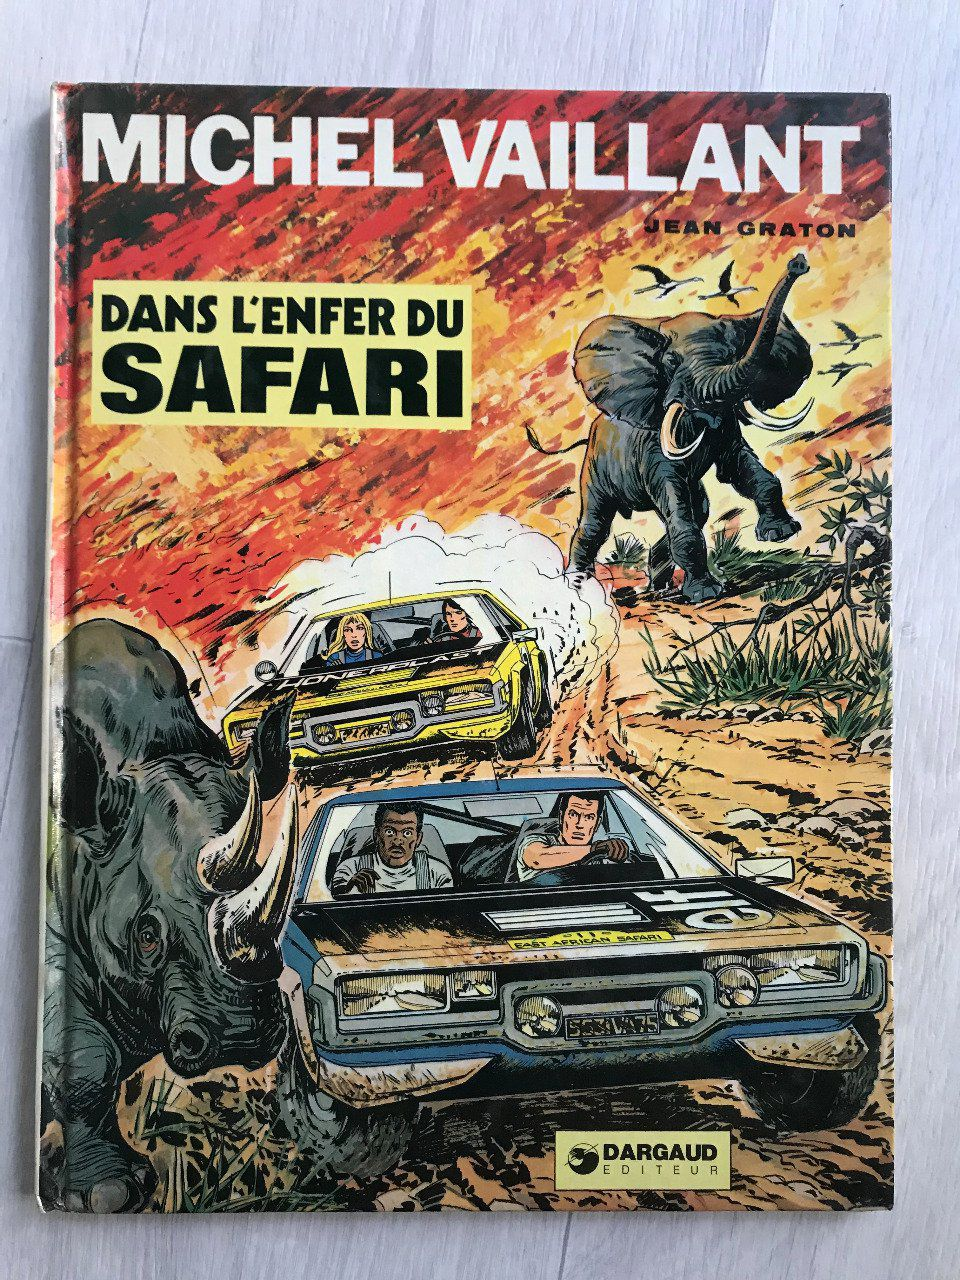 Michel Vaillant, tome 27, Dans l'enfer du Safari, 1975